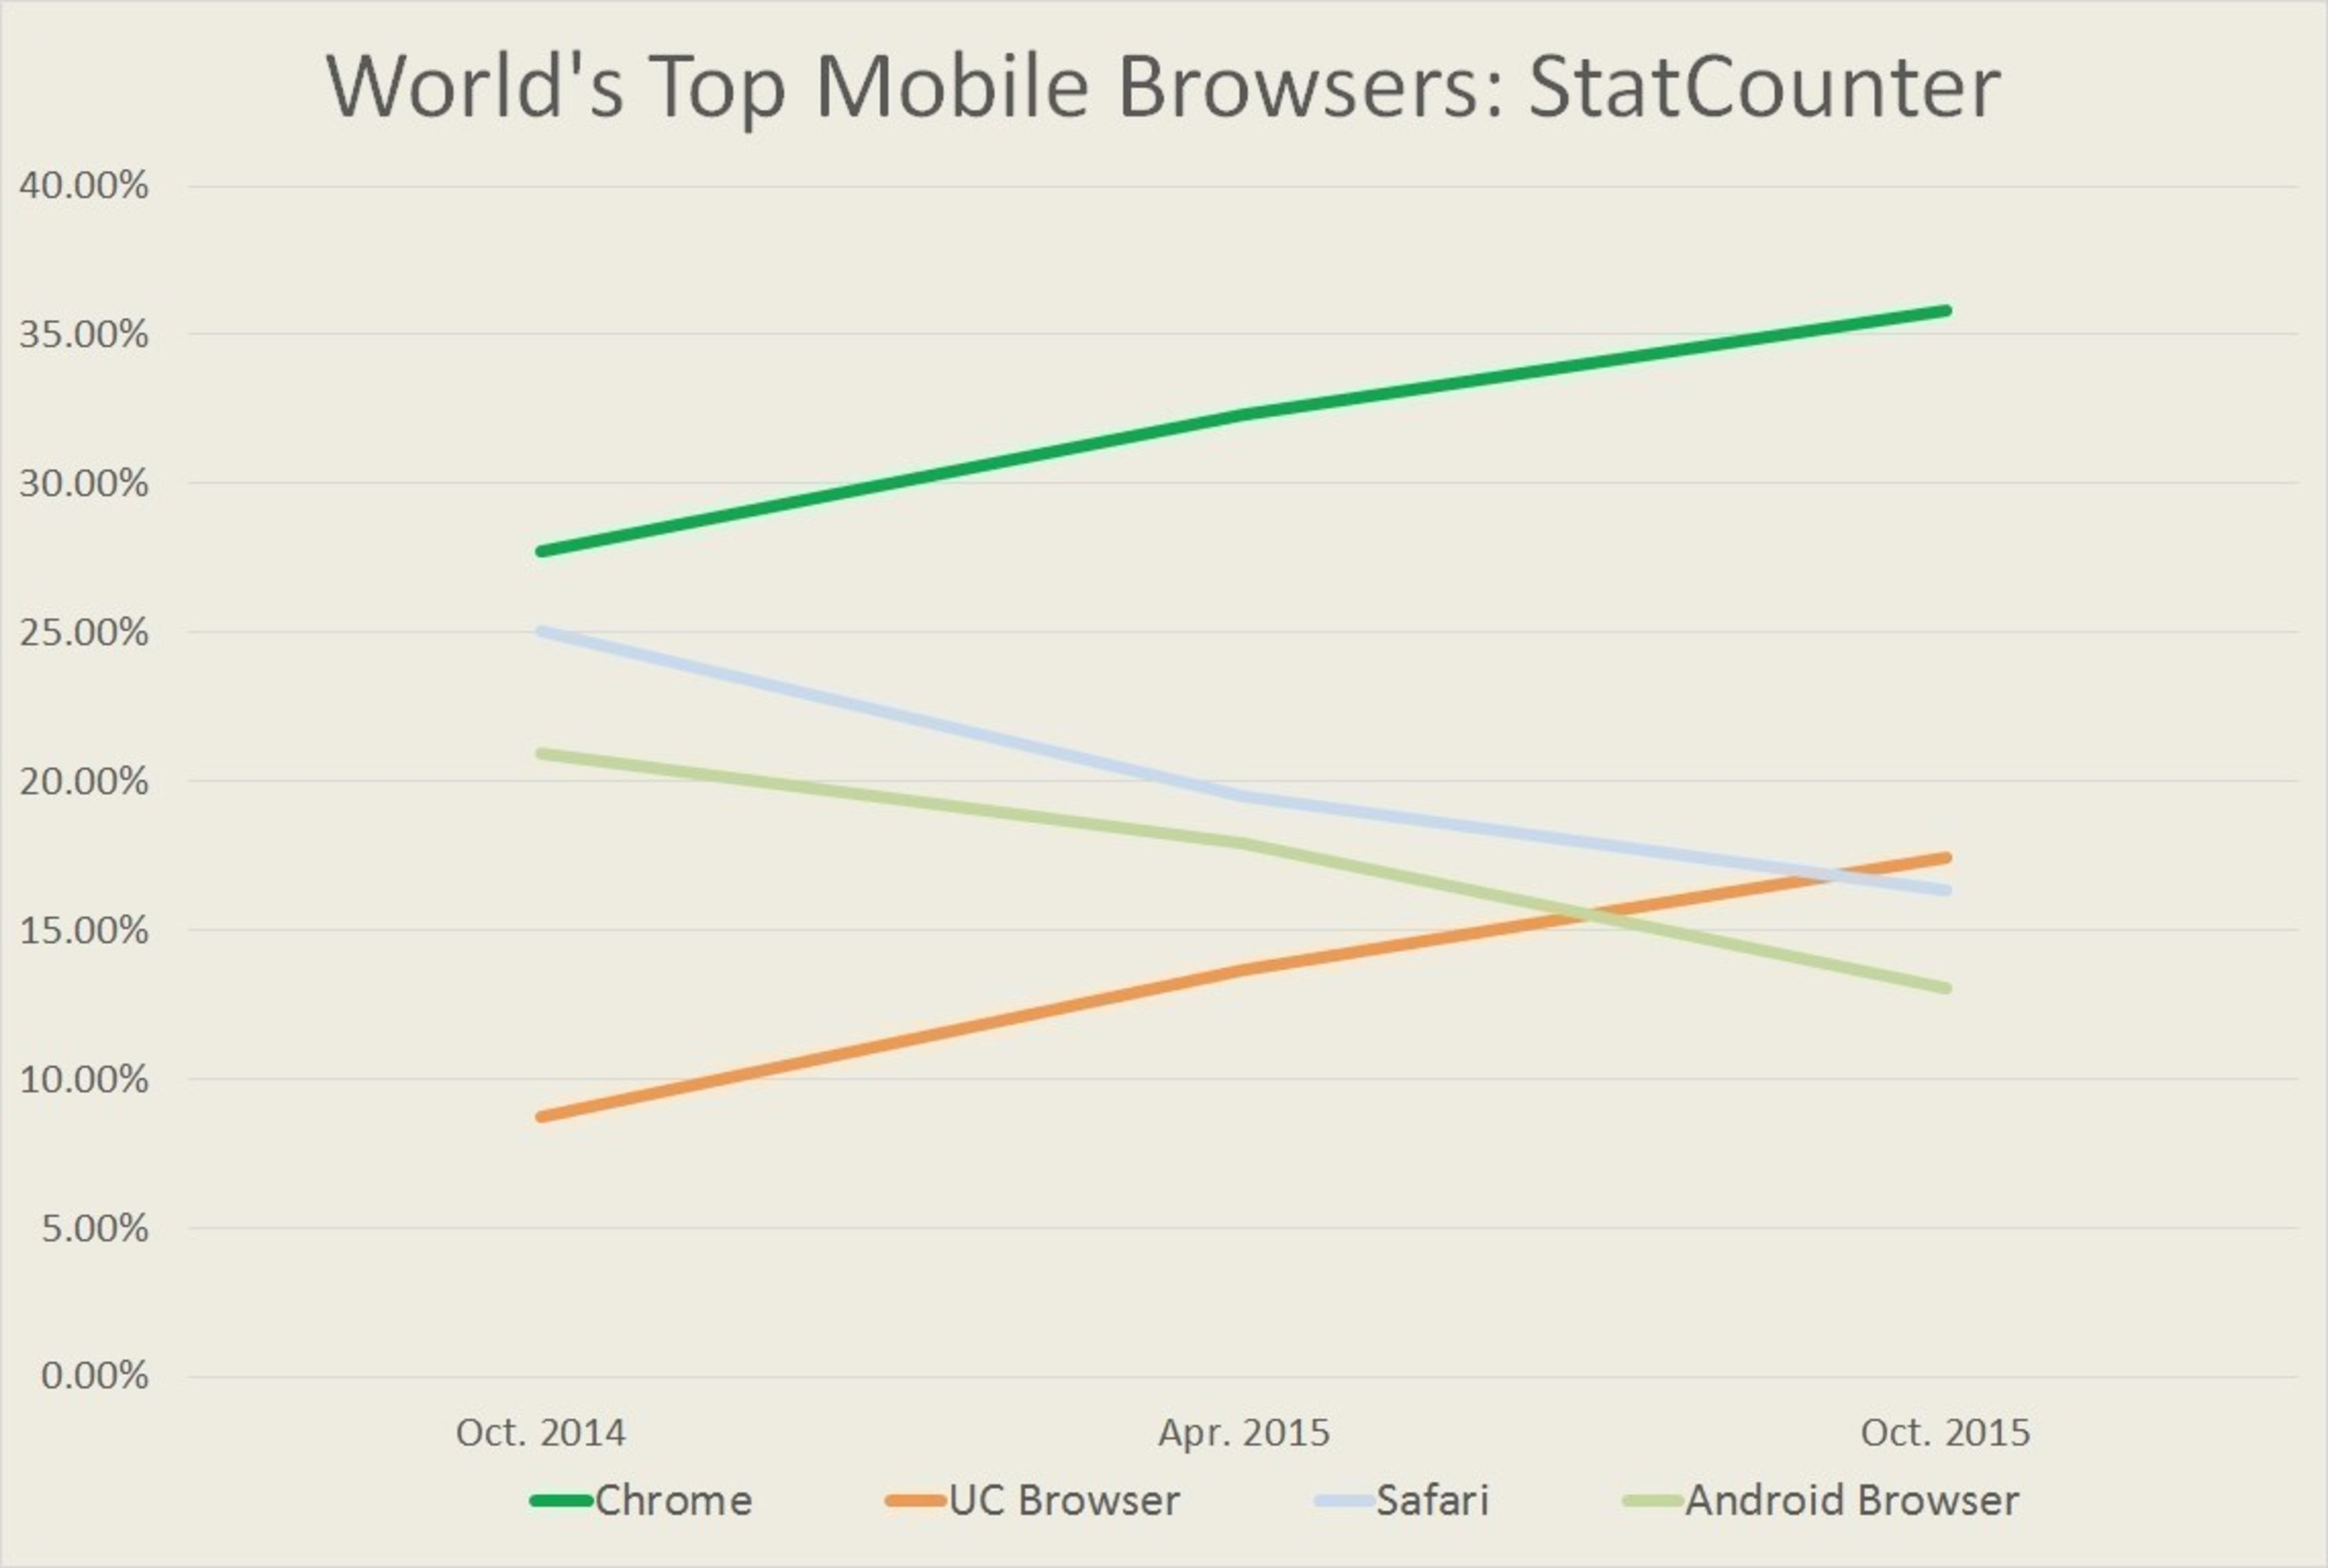 UC Browser becomes world's No.2 mobile browser as per StatCounter.